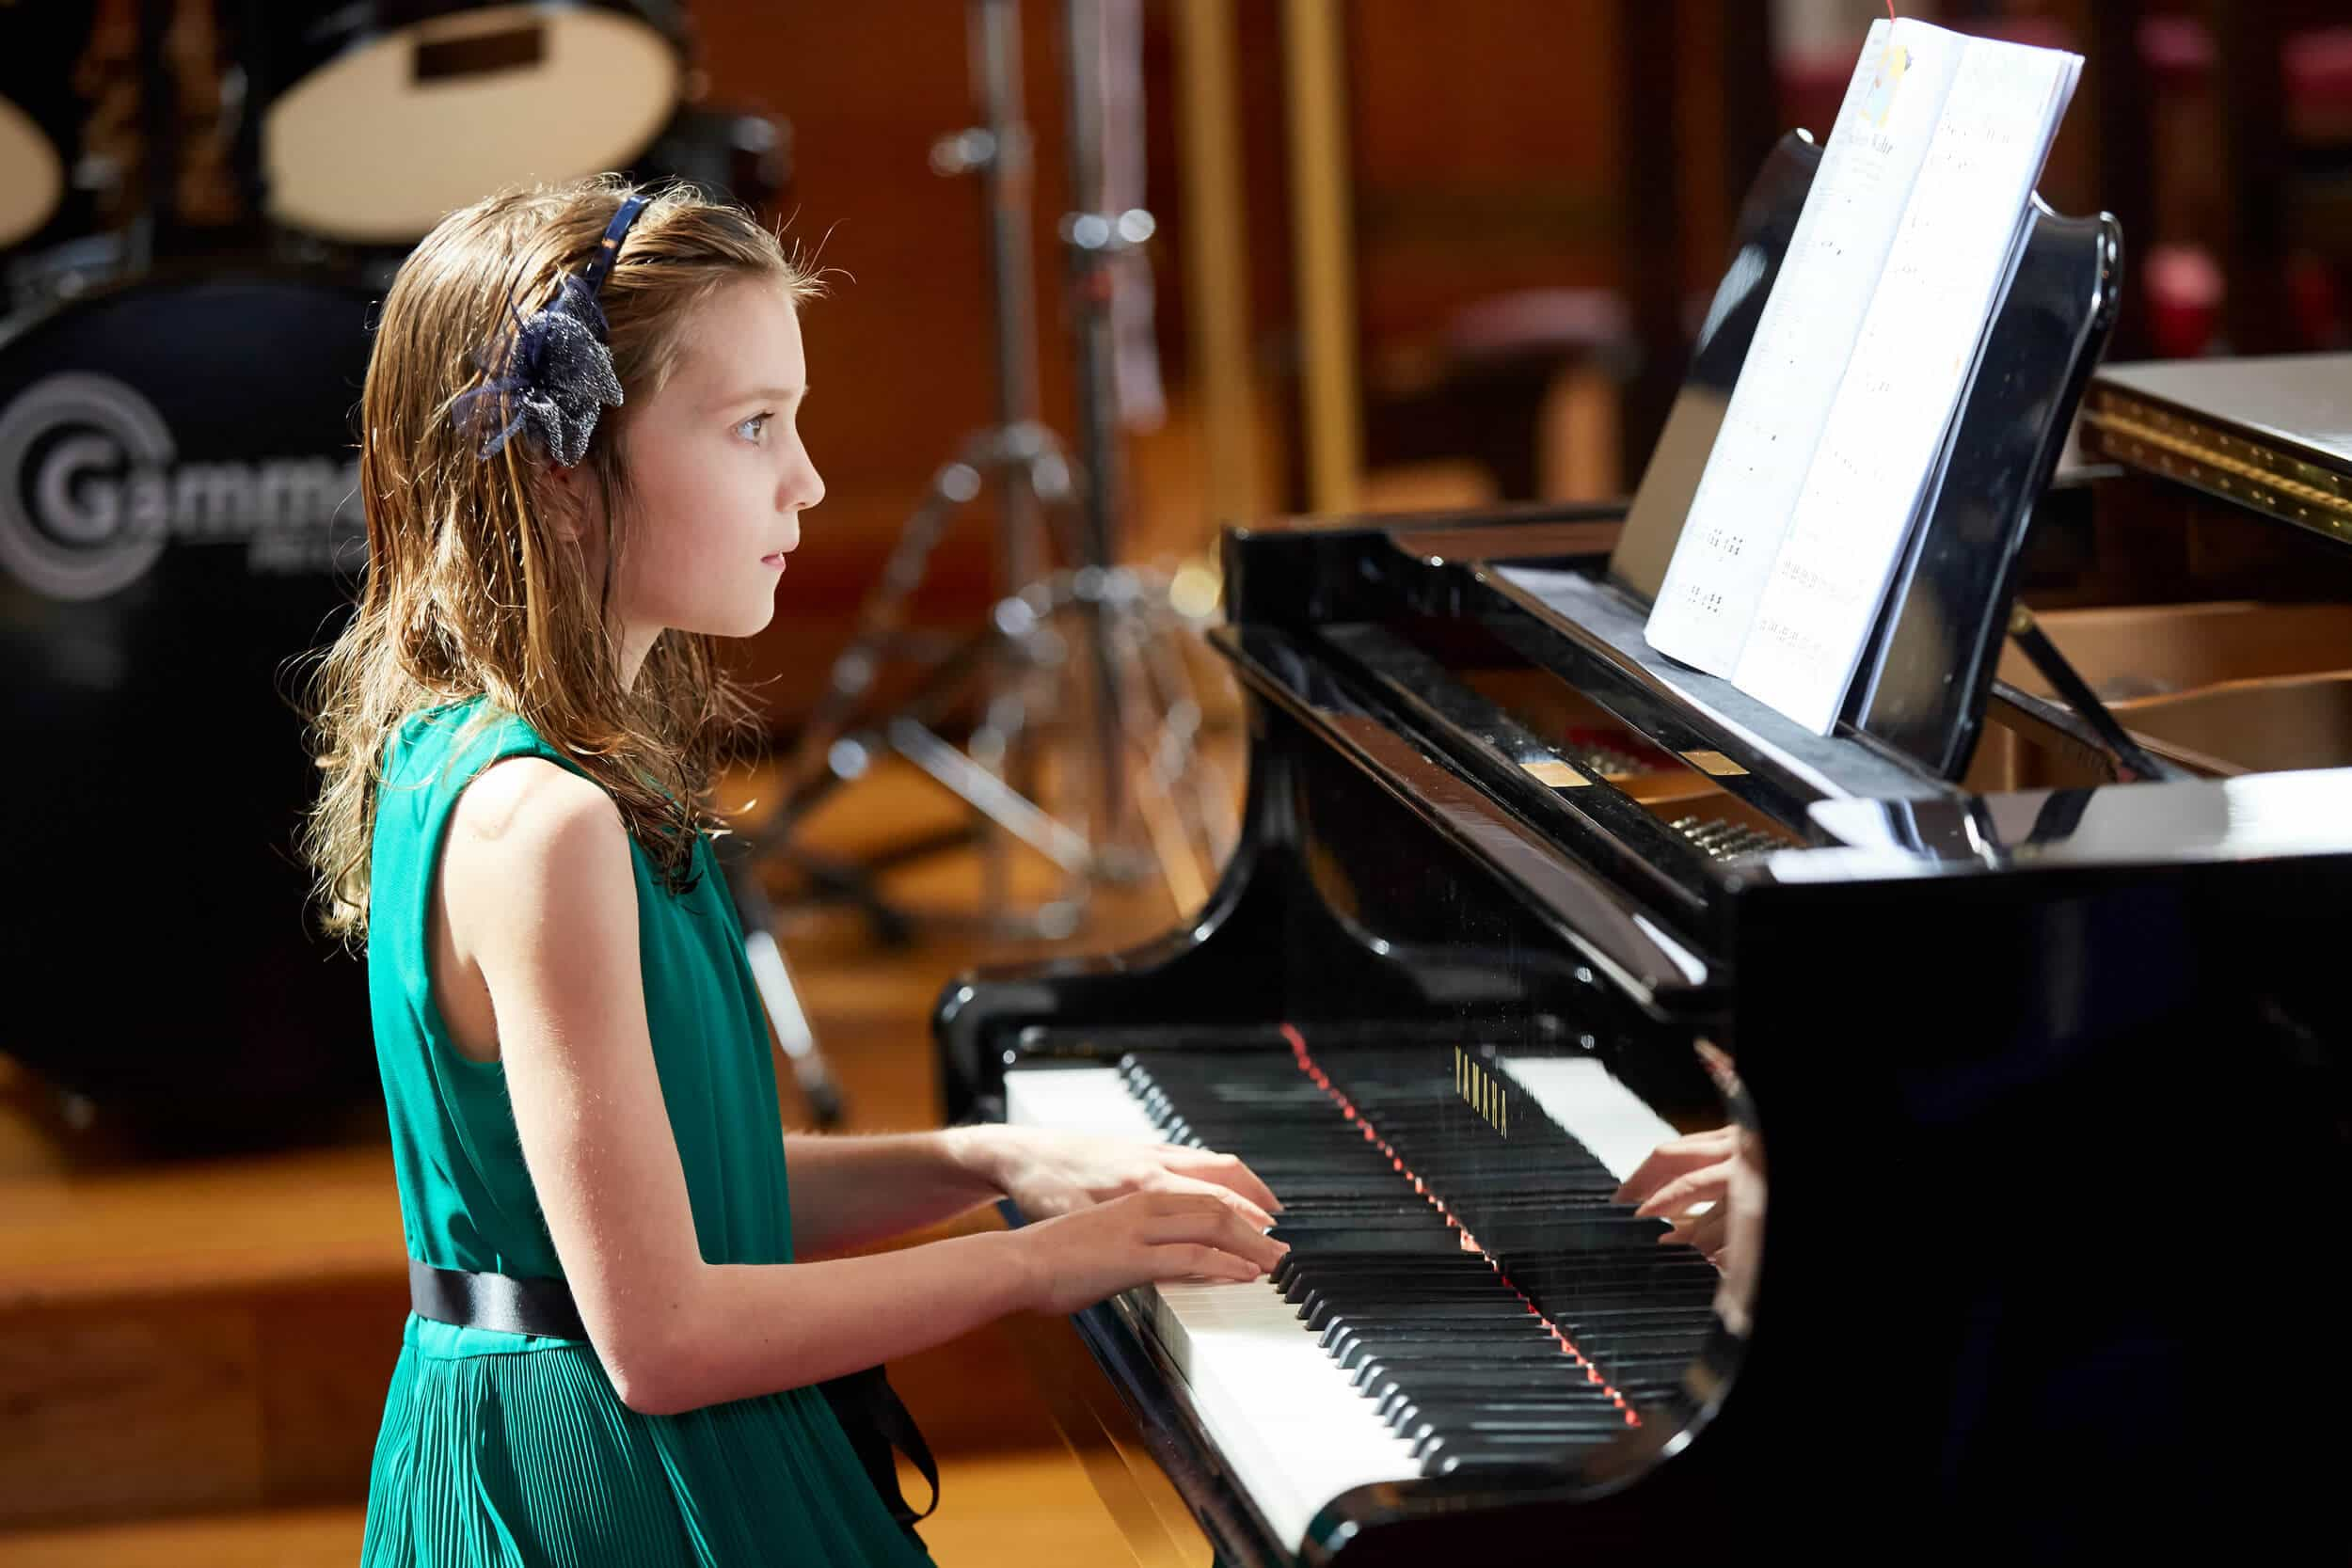 Improve your musical talents